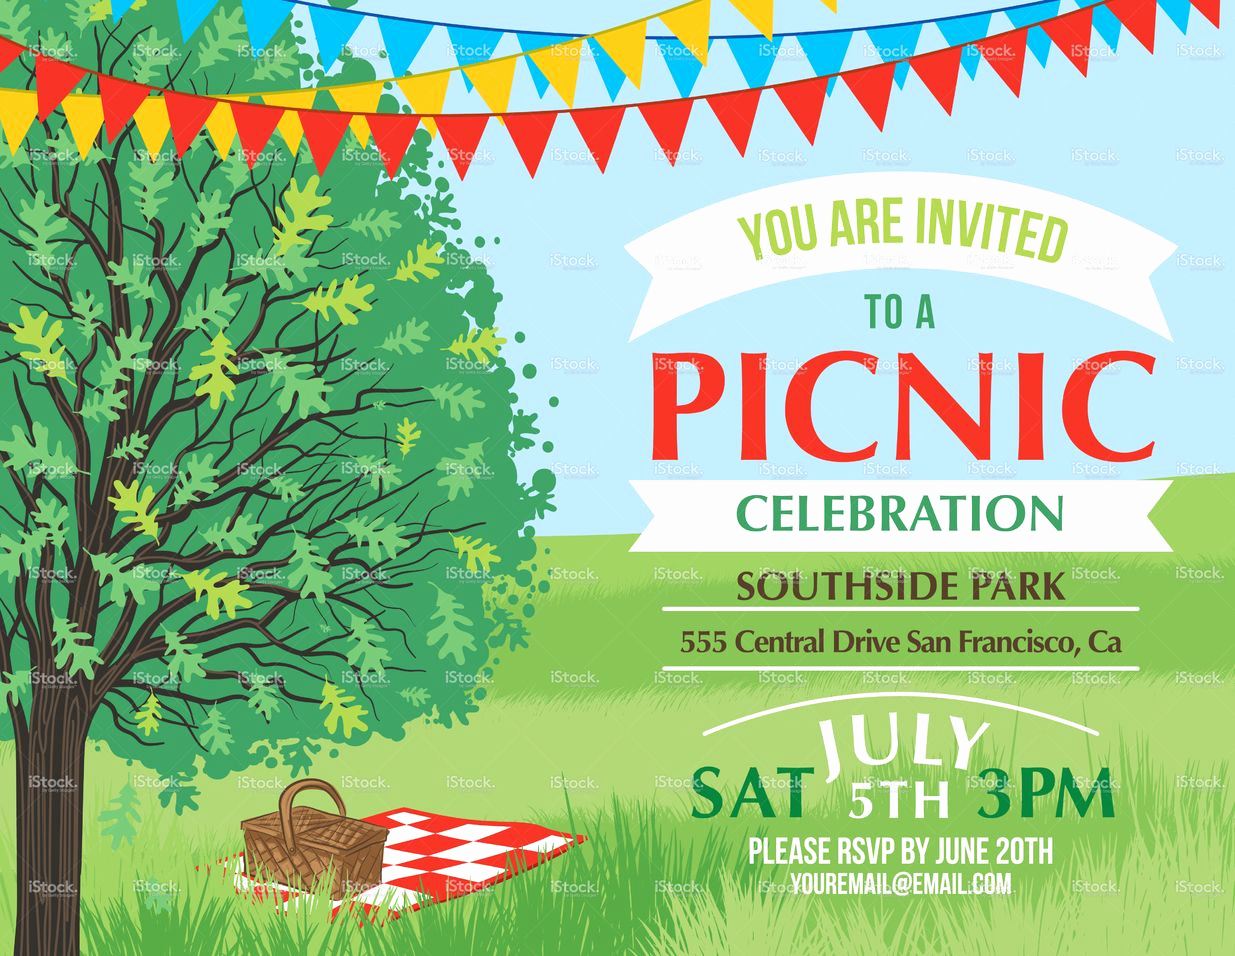 Free Printable Picnic Invitation Template Best Of Summer Picnic and Bbq Invitation Flyer or Template Text